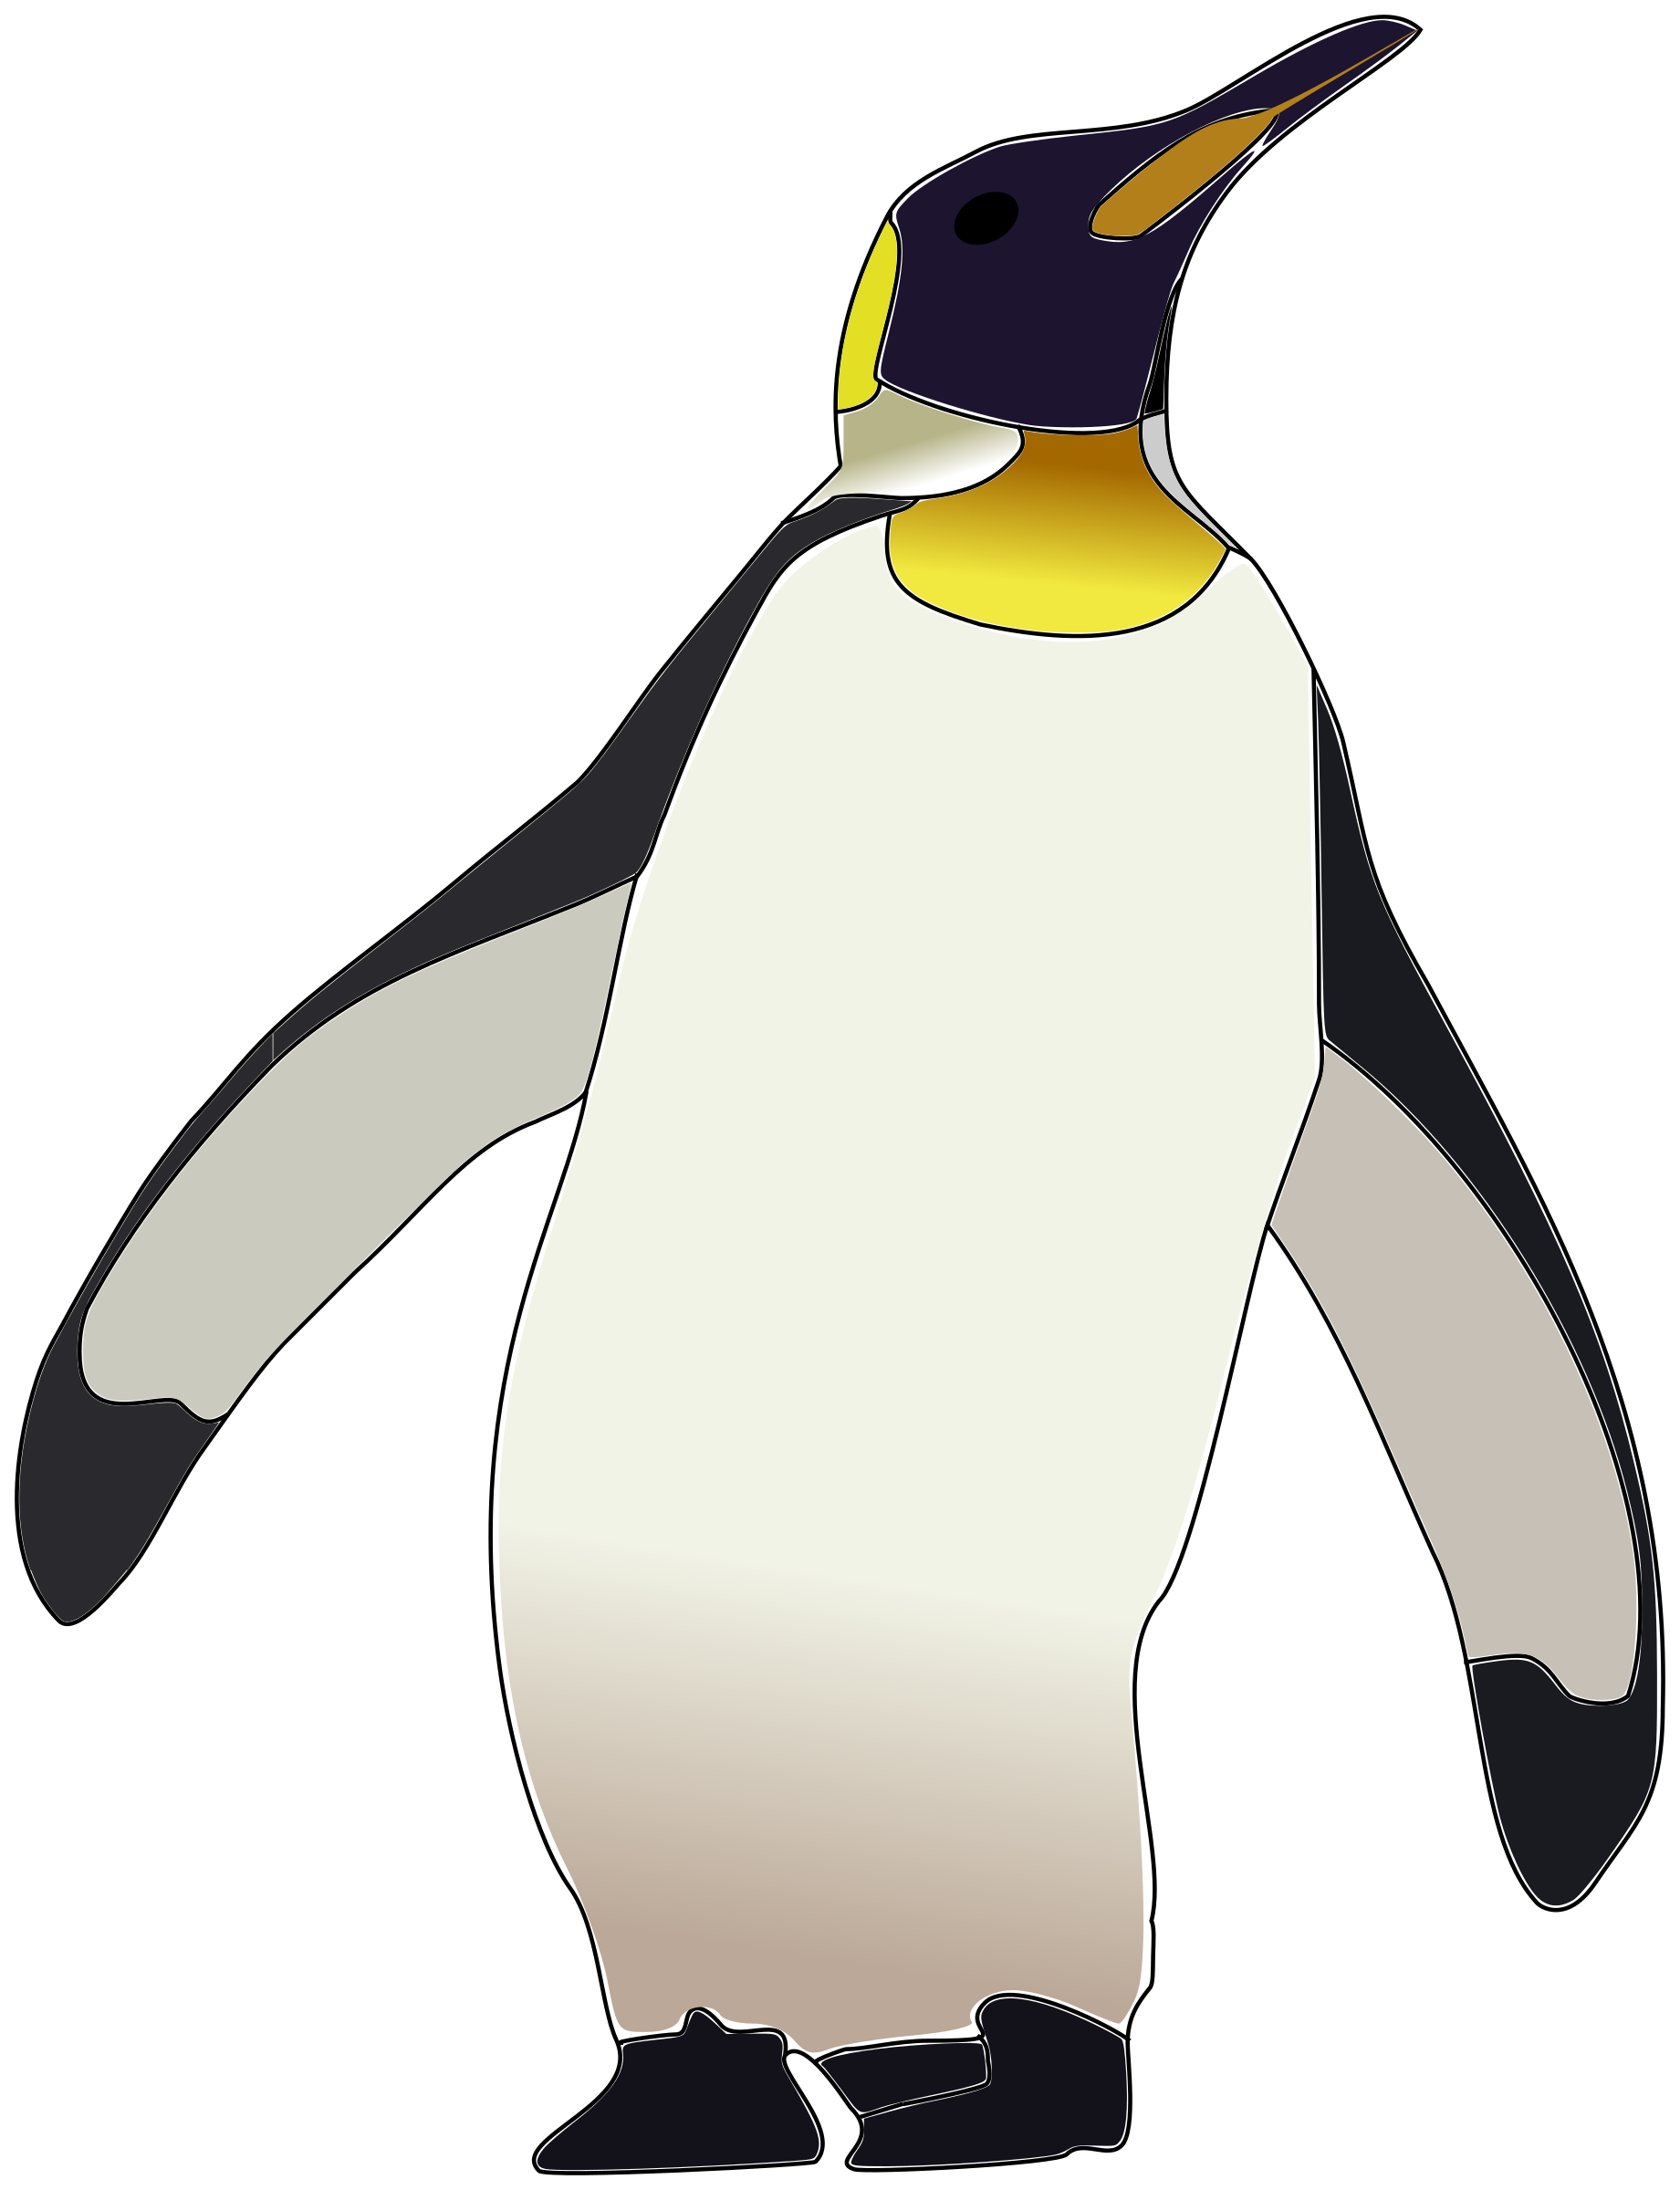 penguin by cprostire